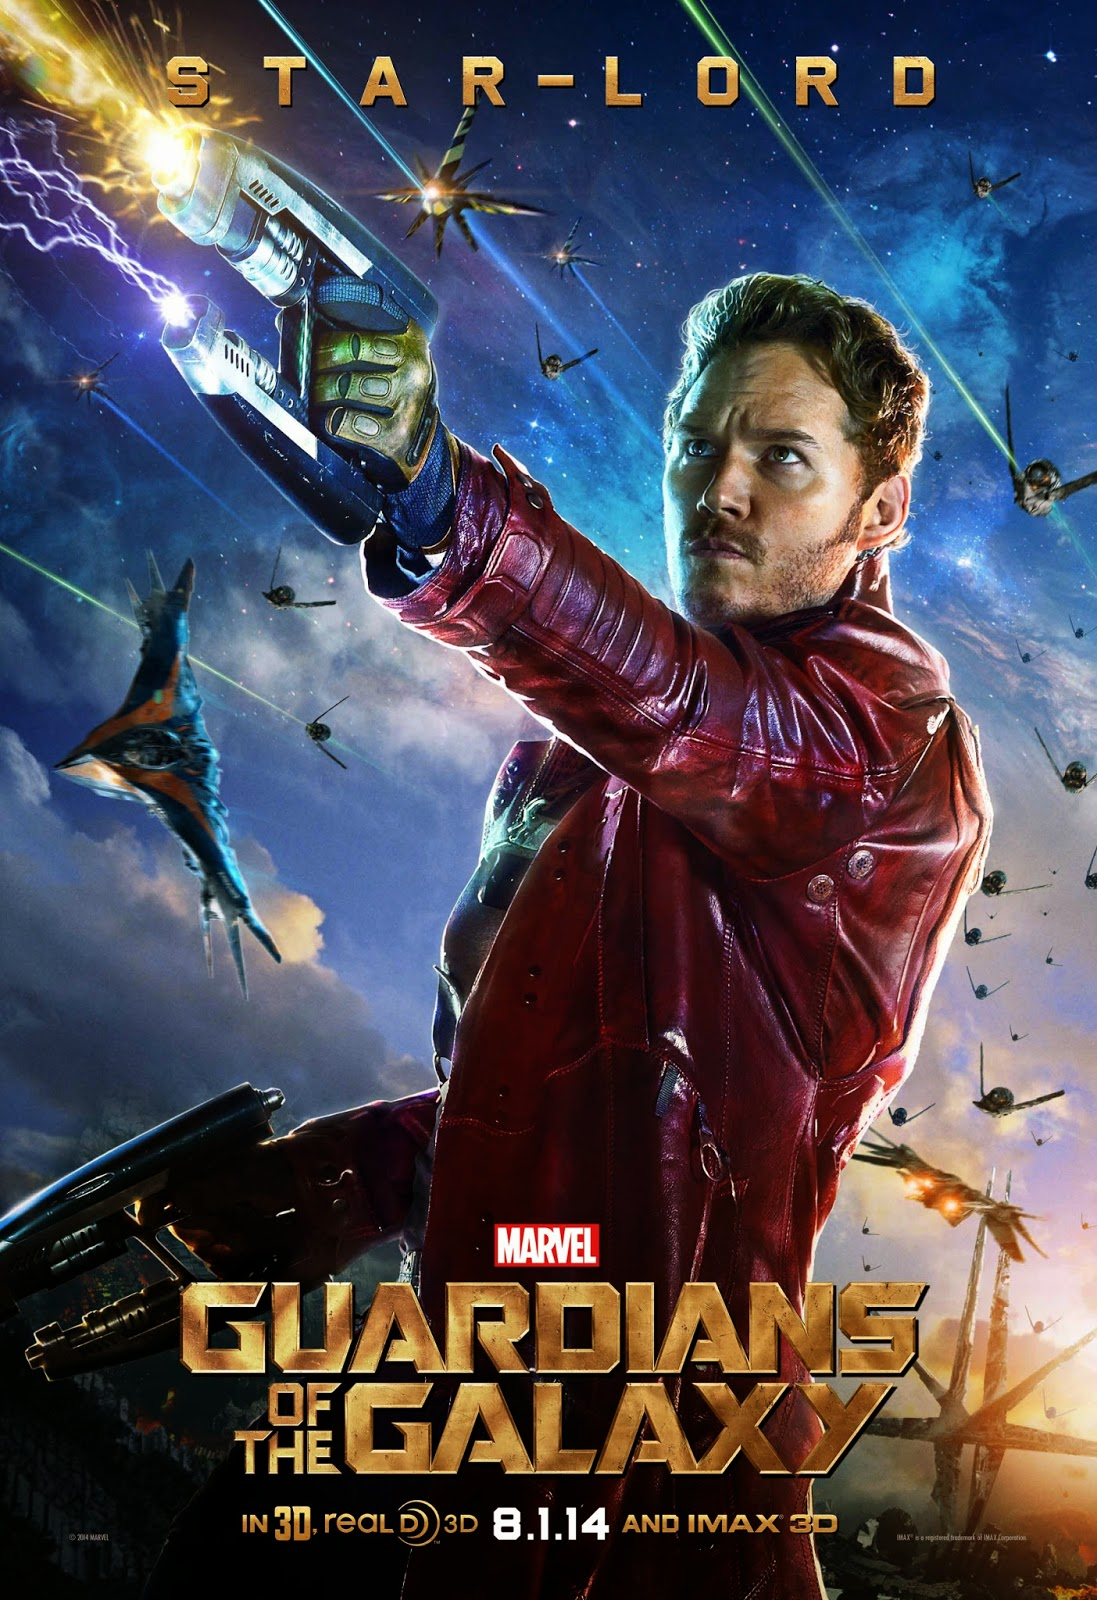 GUARDIANS OF THE GALAXY-Official Poster Banner PROMO CHAR-12JUNHO2014-01